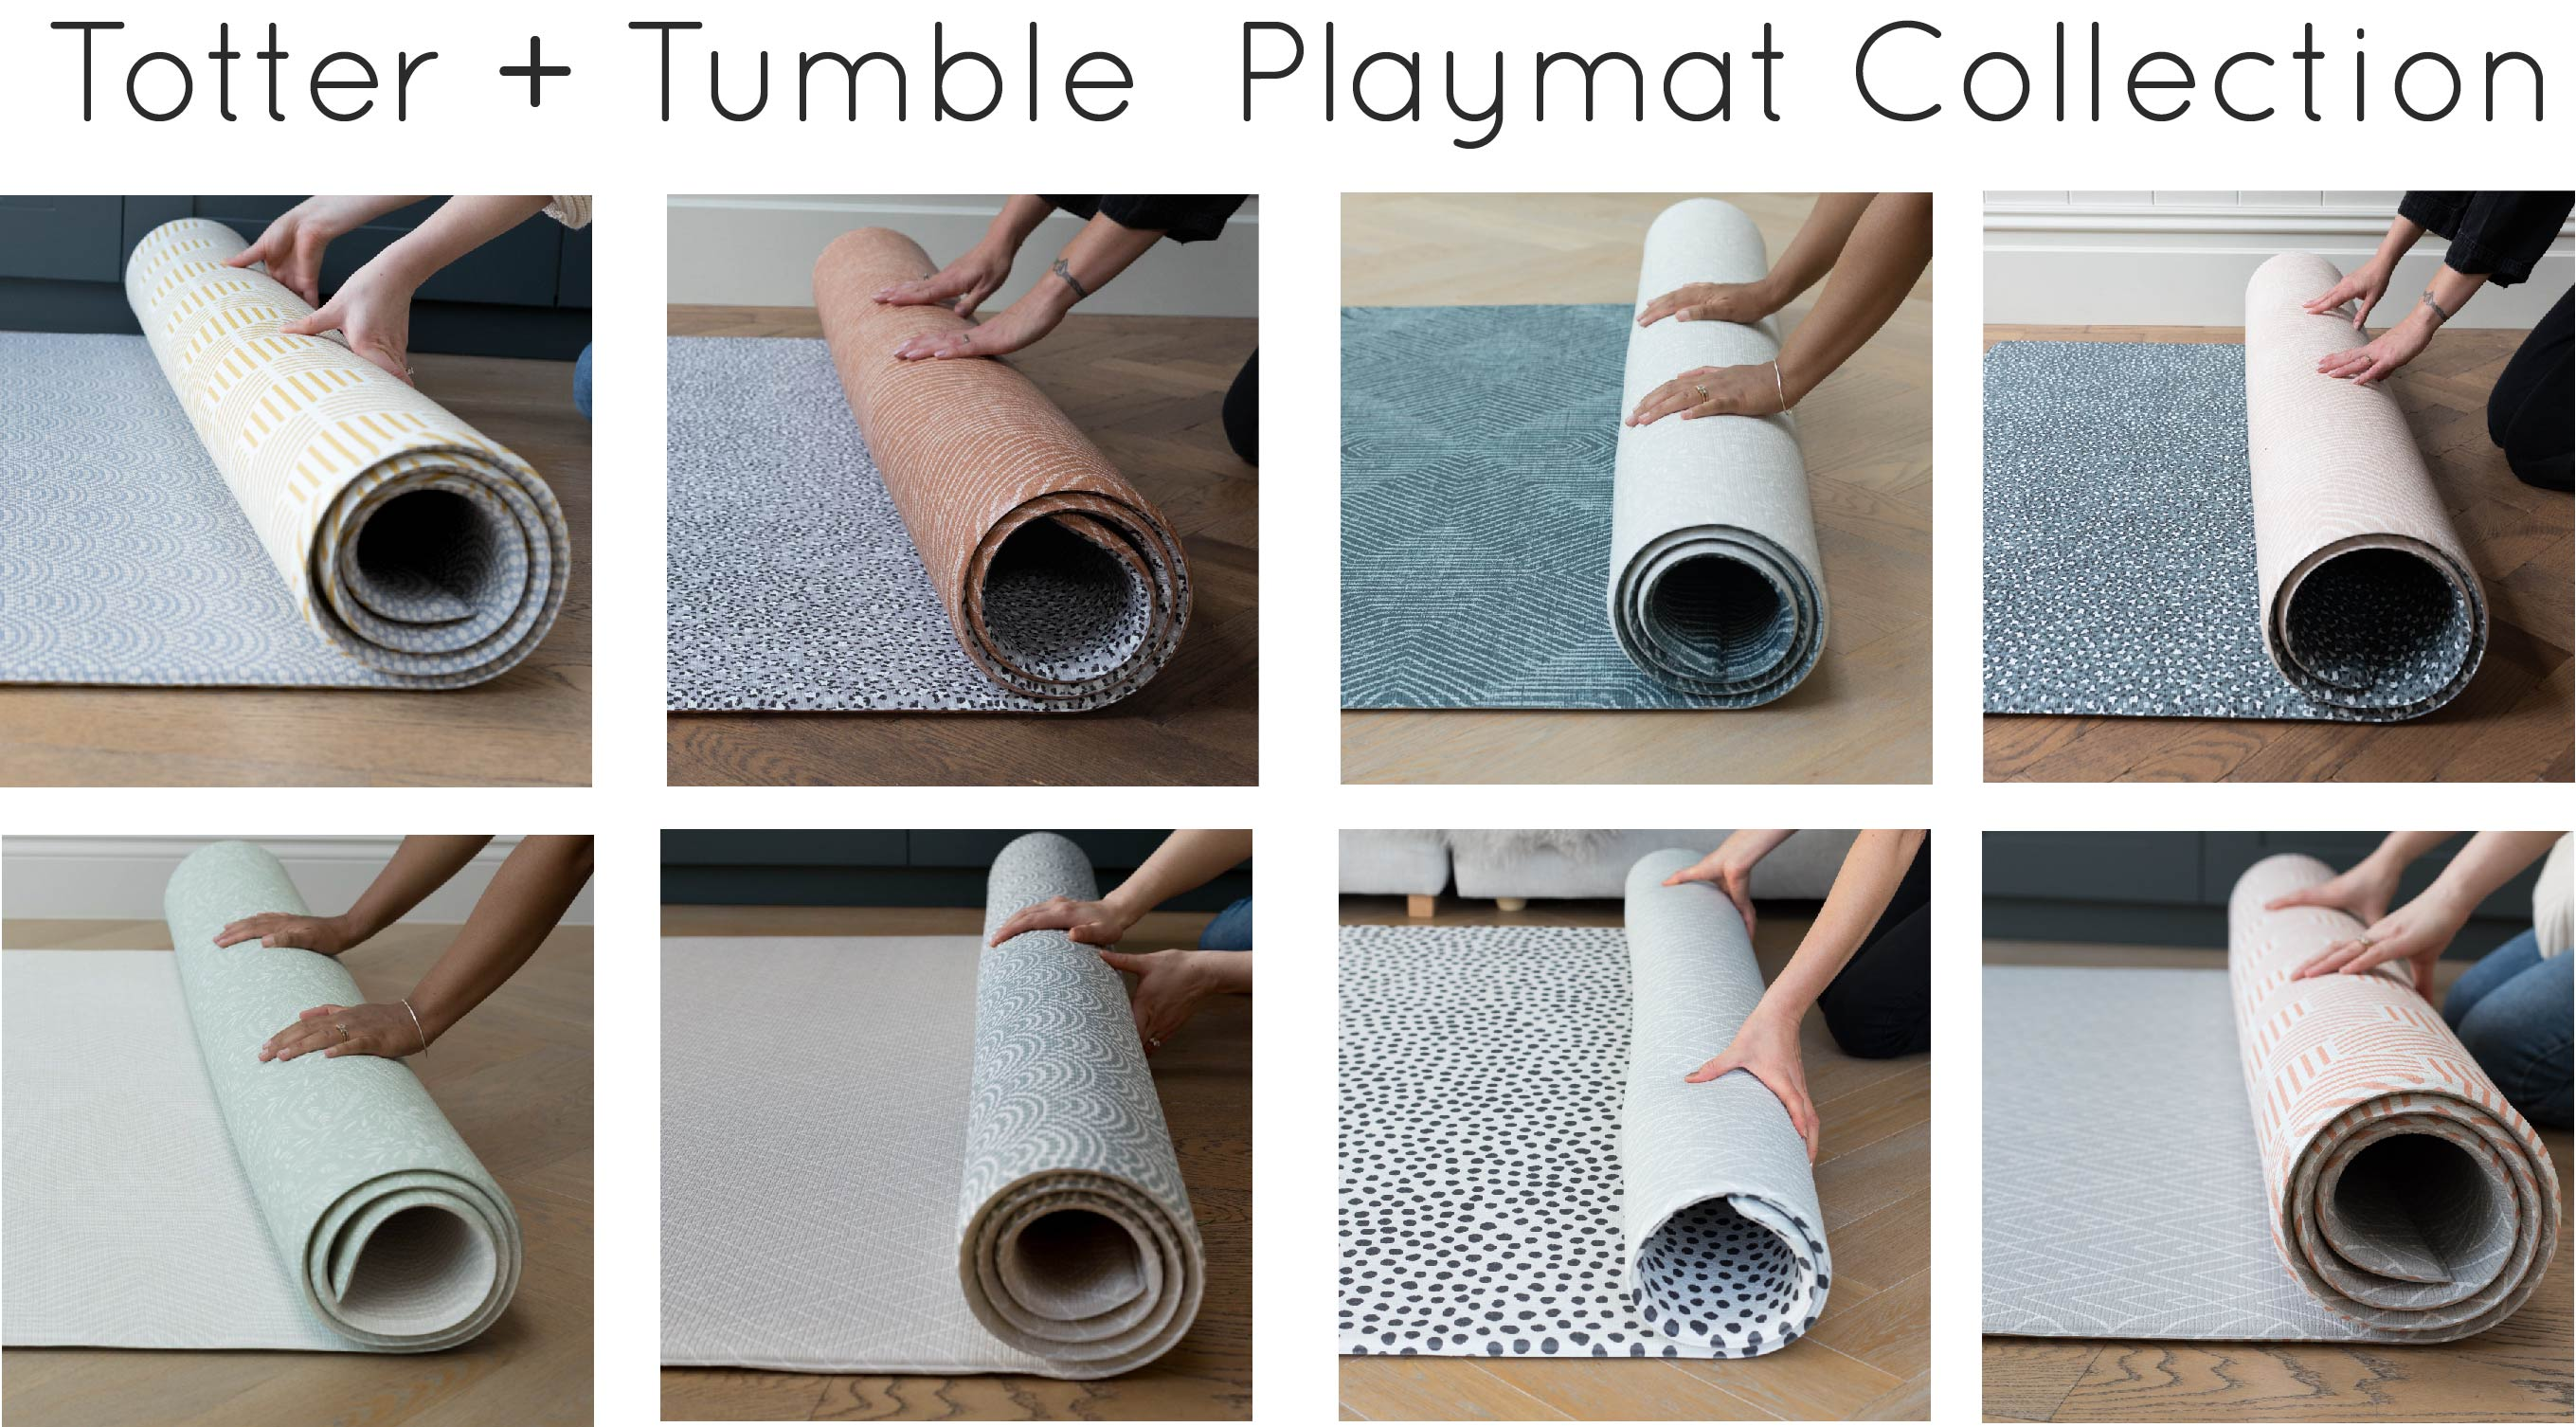 The complete 2020 luxury Playmat collection by Totter + Tumble